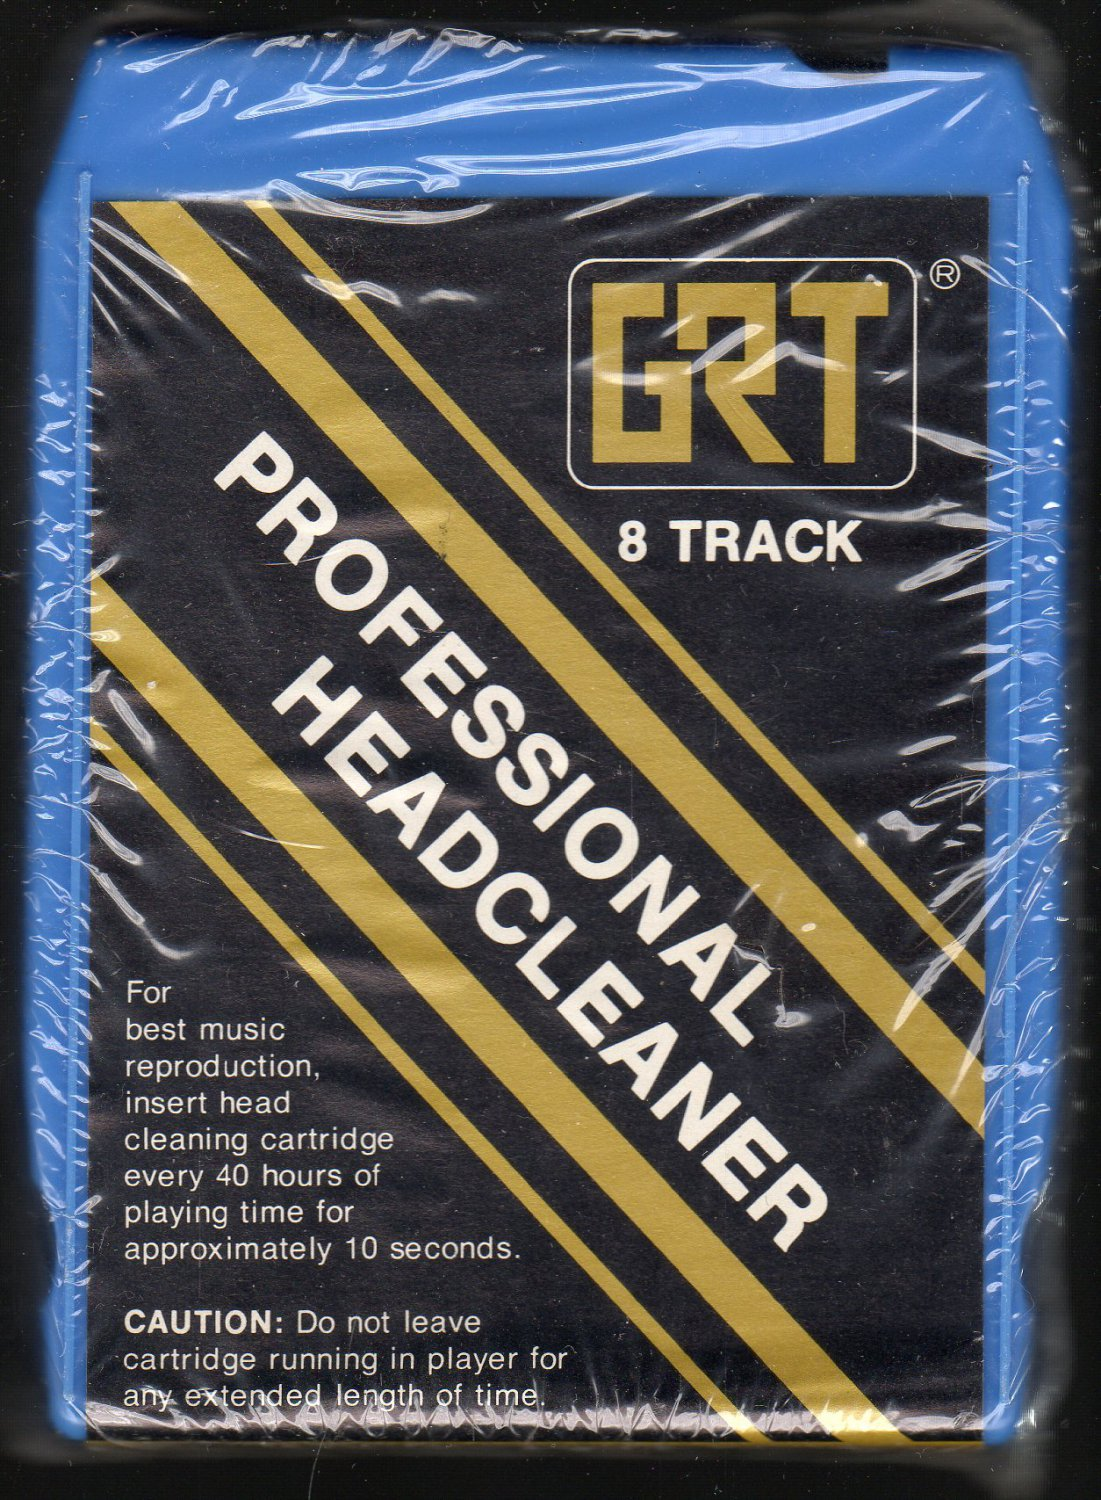 GRT - Professional Head Cleaner Sealed New A36 SOLD 8-TRACK TAPE